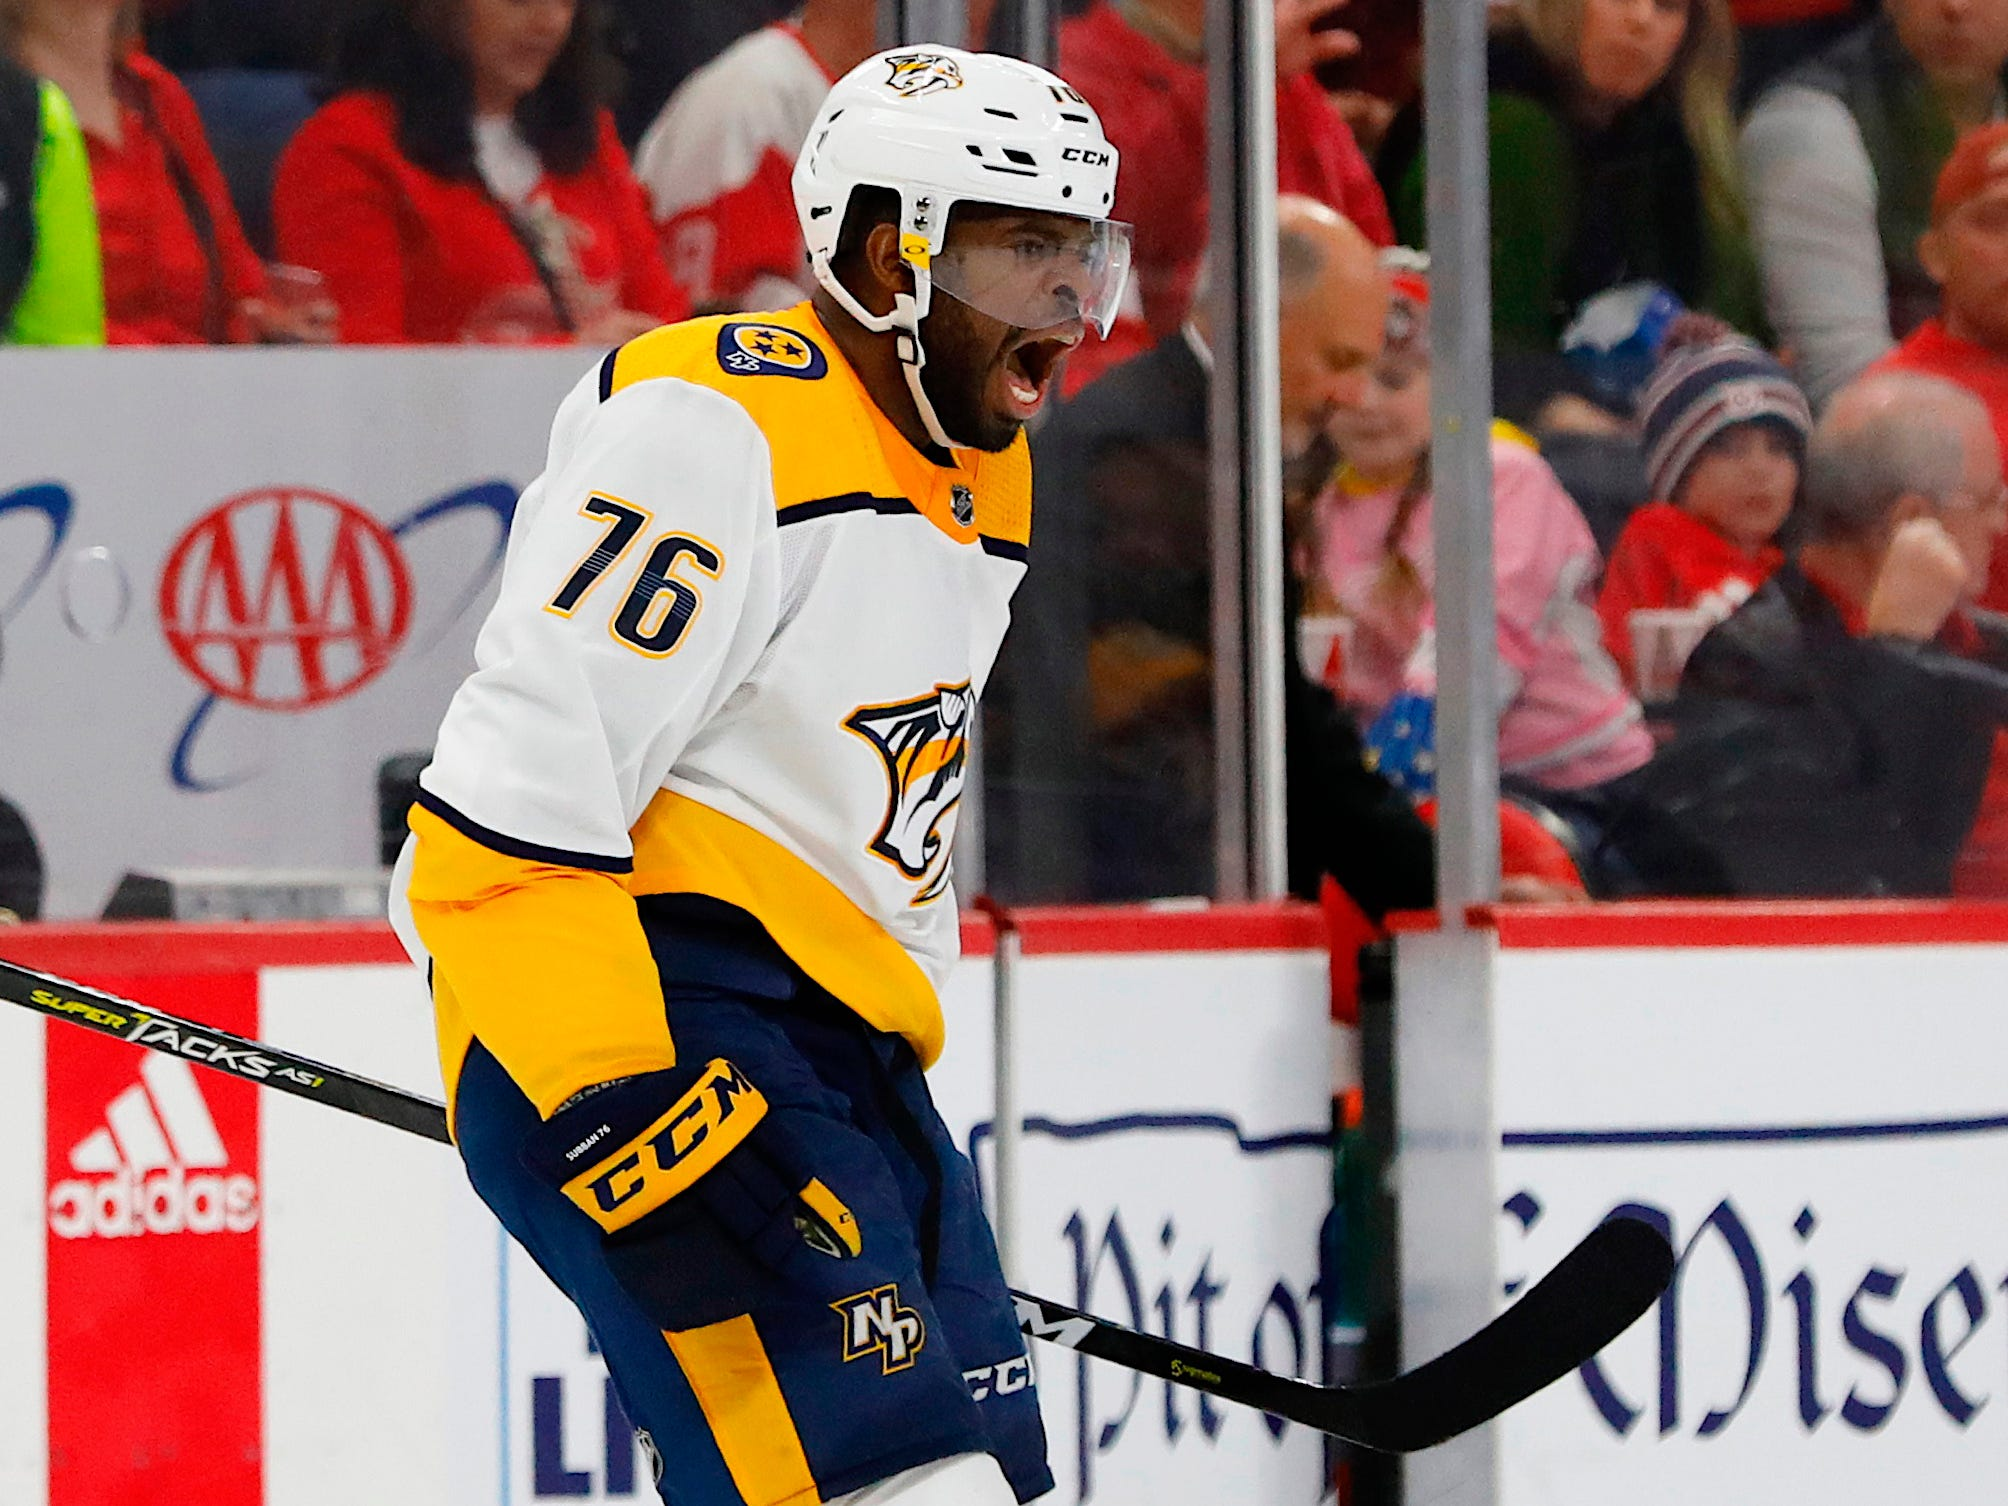 Jan 4, 2019: Wings 4, Preds 3, OT -- Nashville Predators defenseman P.K. Subban (76) celebrates after scoring in the first period against the Detroit Red Wings at Little Caesars Arena.